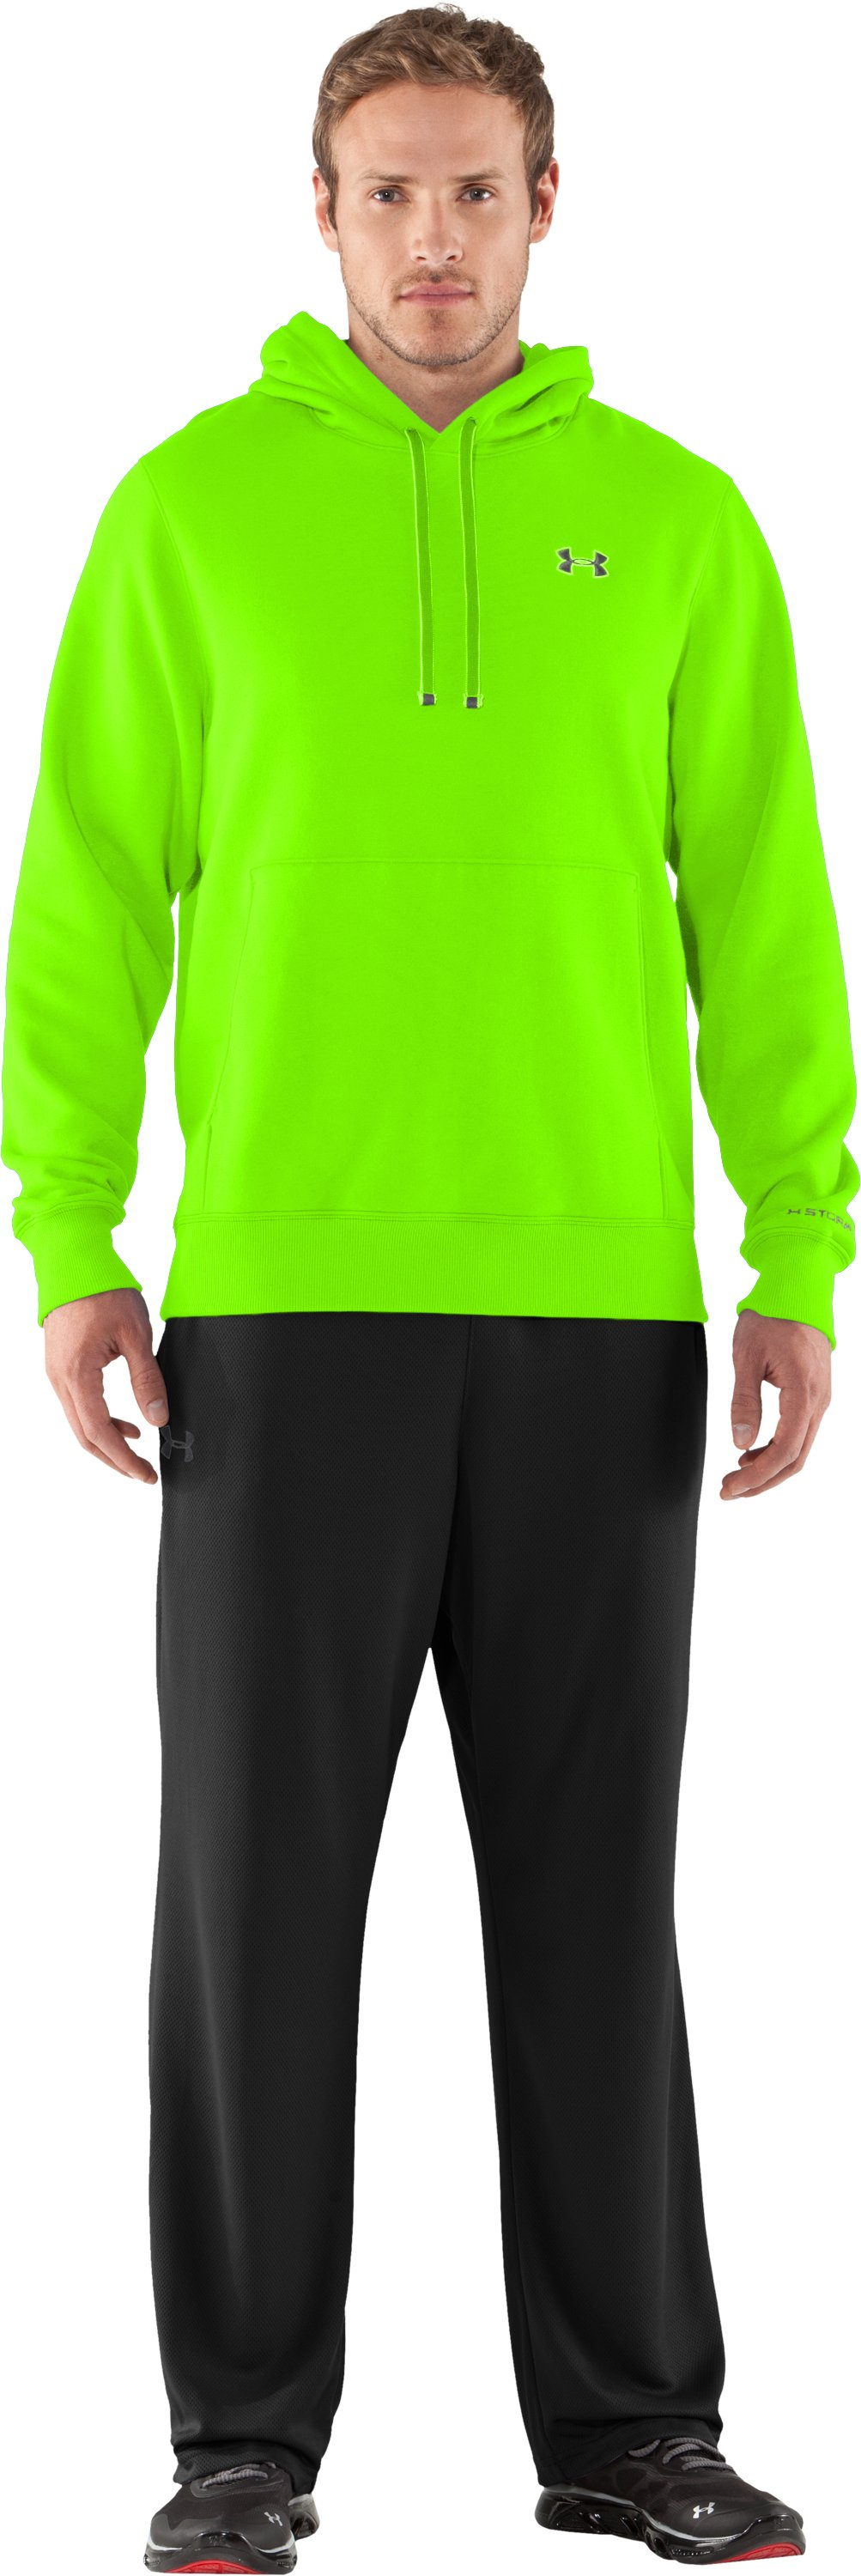 Men's Charged Cotton® Storm Transit Hoodie, HYPER GREEN, zoomed image